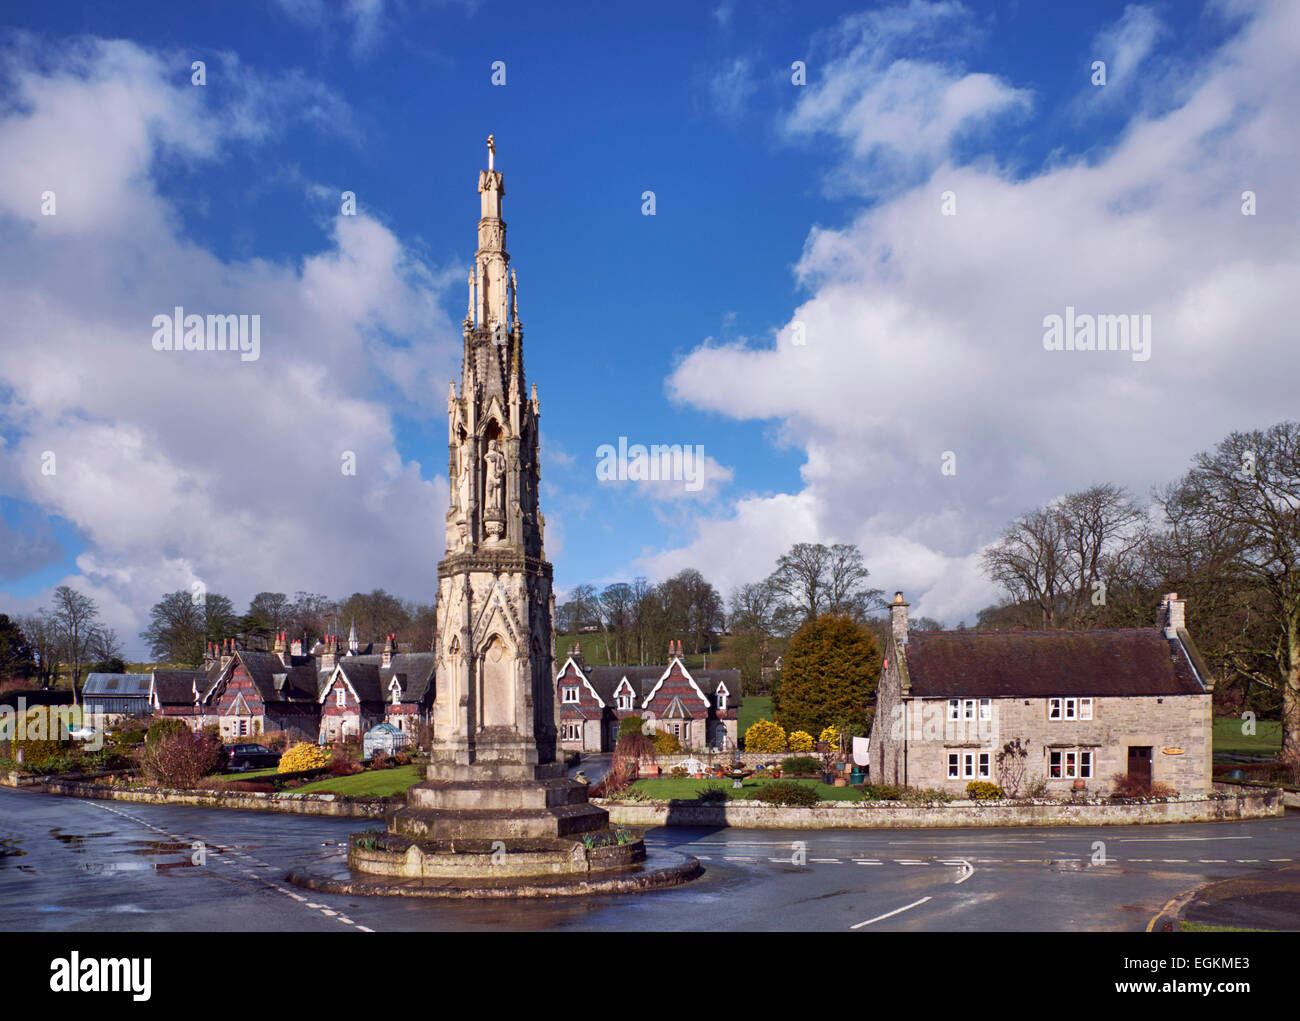 The Mary Watts Russell Memorial Cross and Swiss-style cottages in the village of Ilam. Staffordshire, England. [Peak - Stock Image